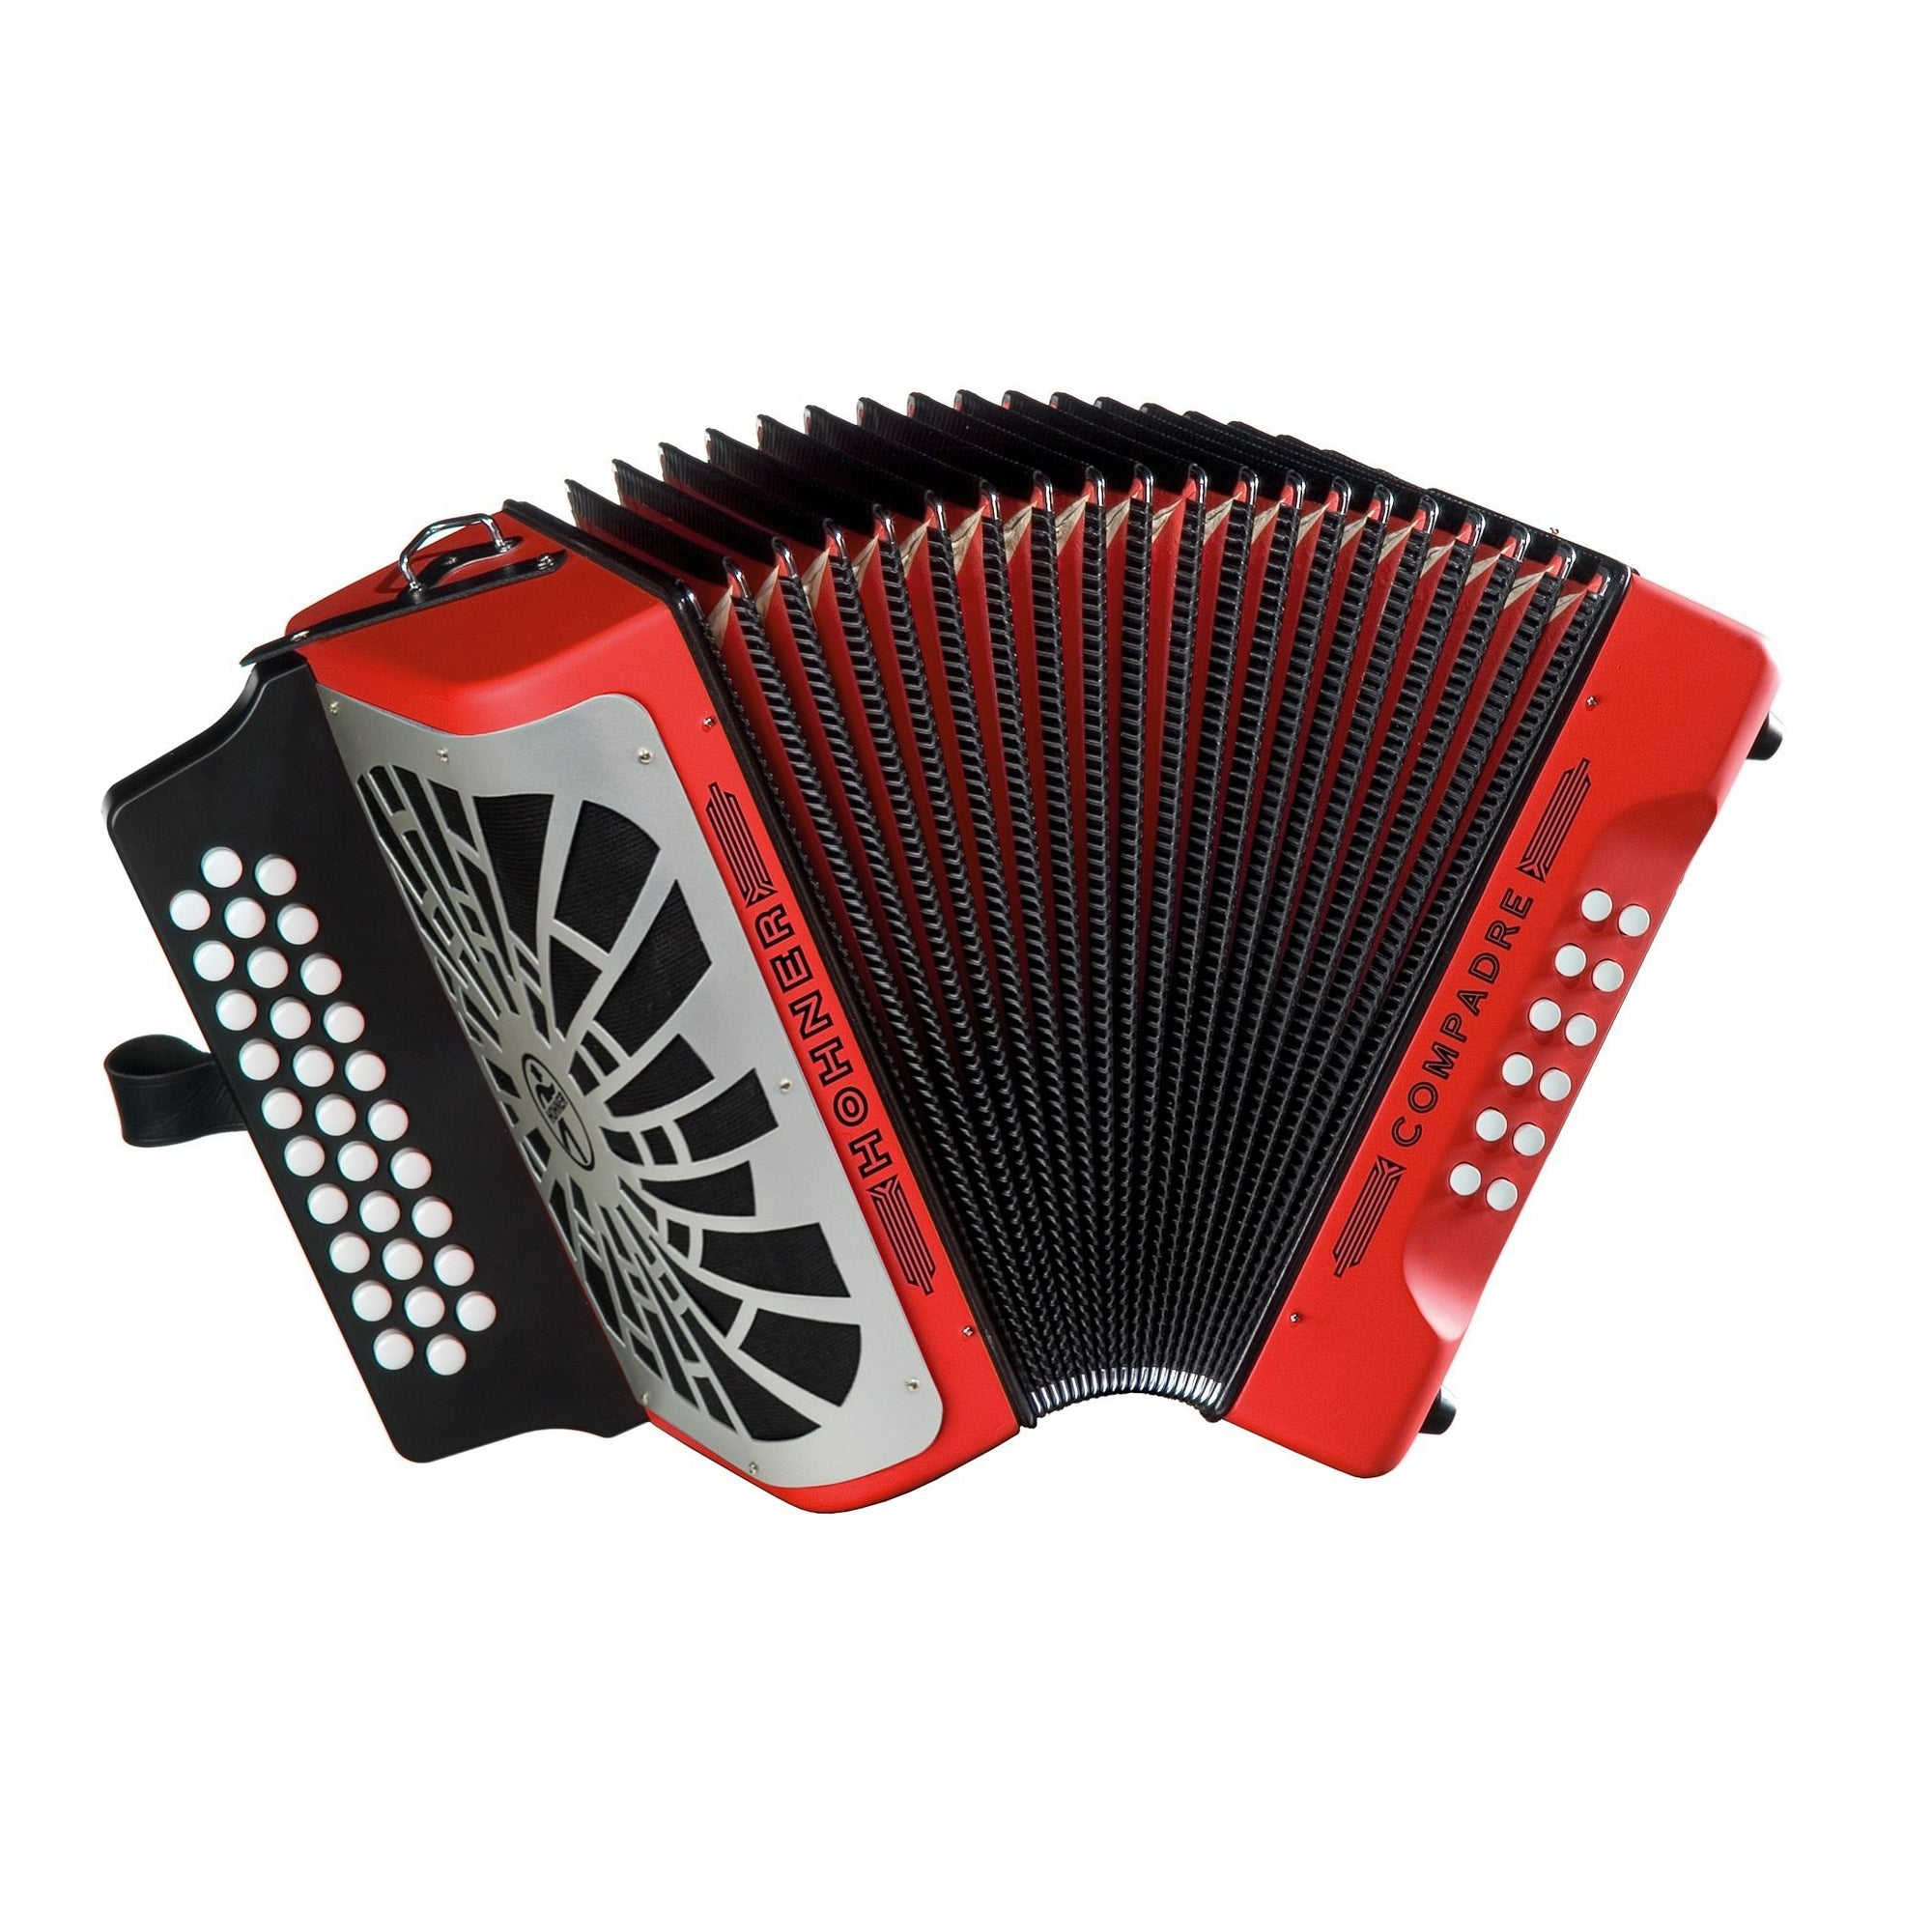 Hohner Compadre Accordion (with Gig Bag), Red, E/A/D, with Gig Bag